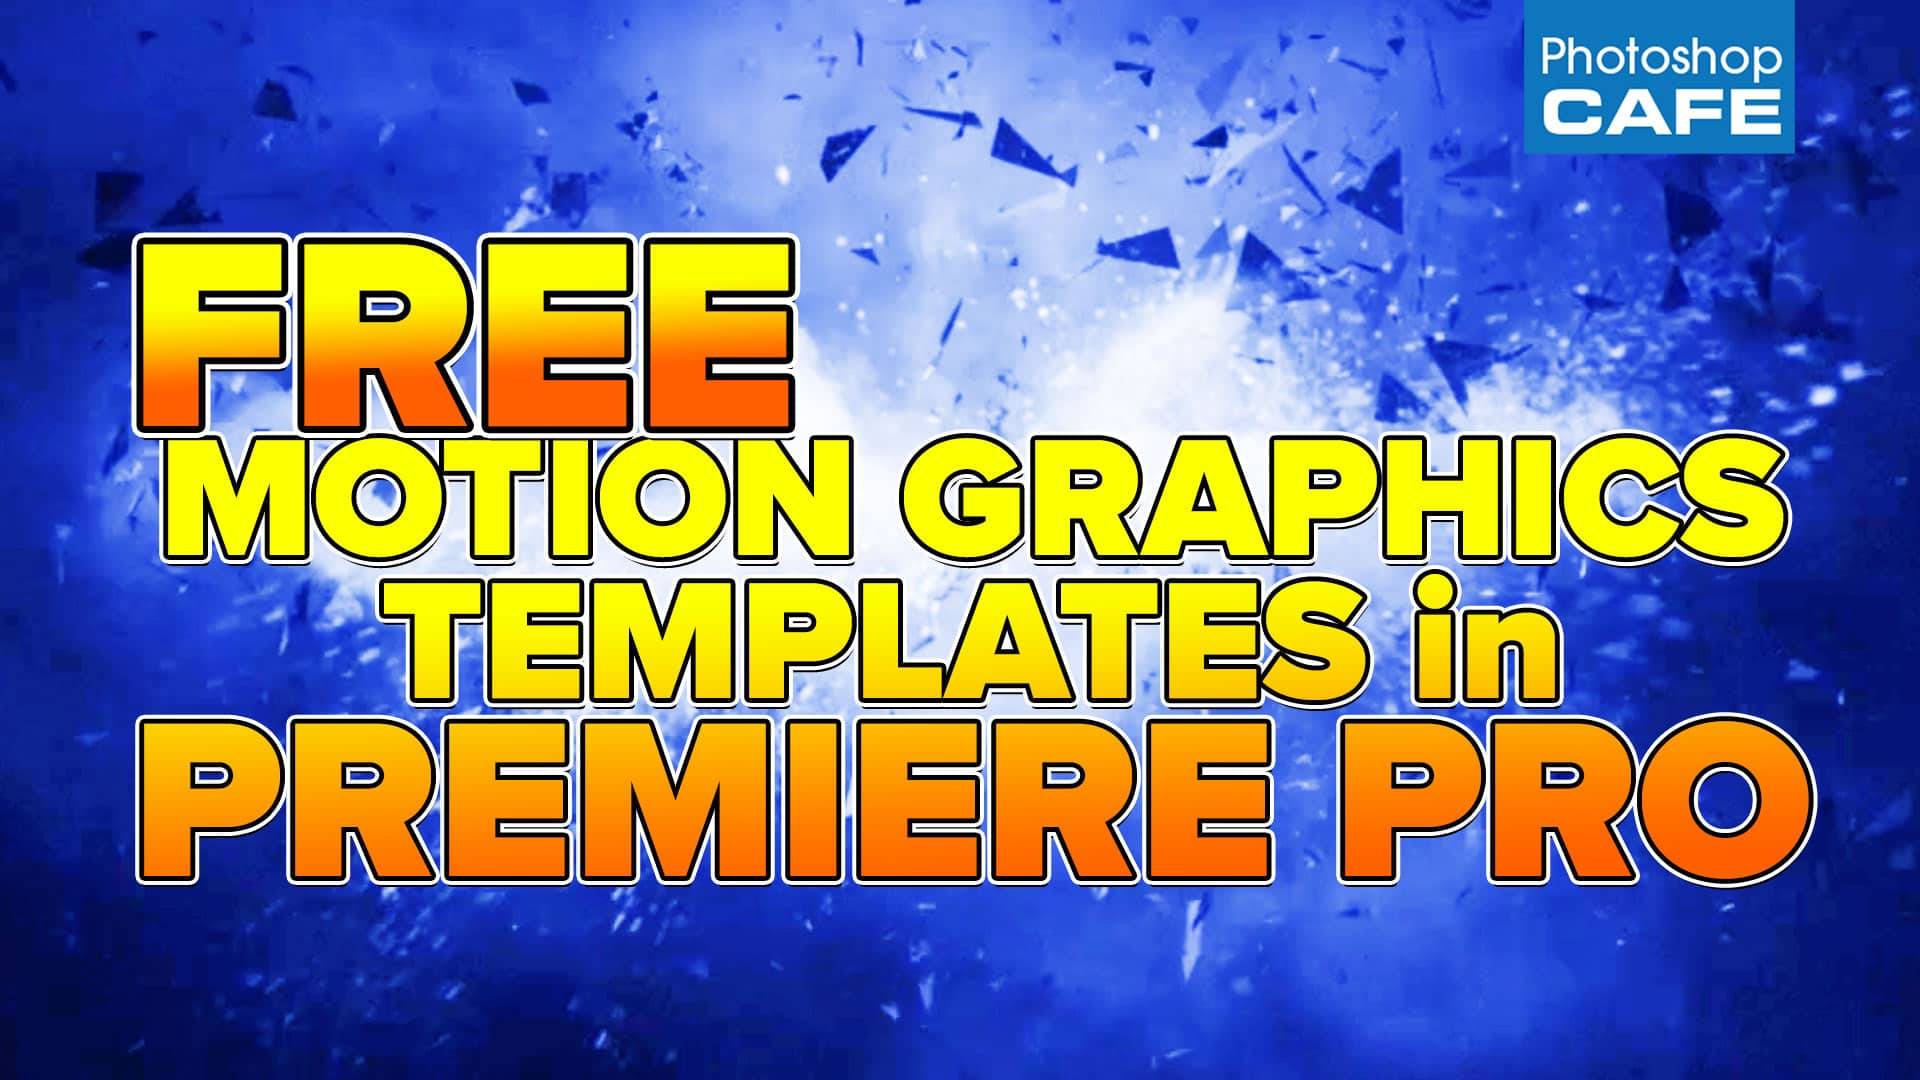 How to use Editable Motion Graphics Templates in Premiere Pro